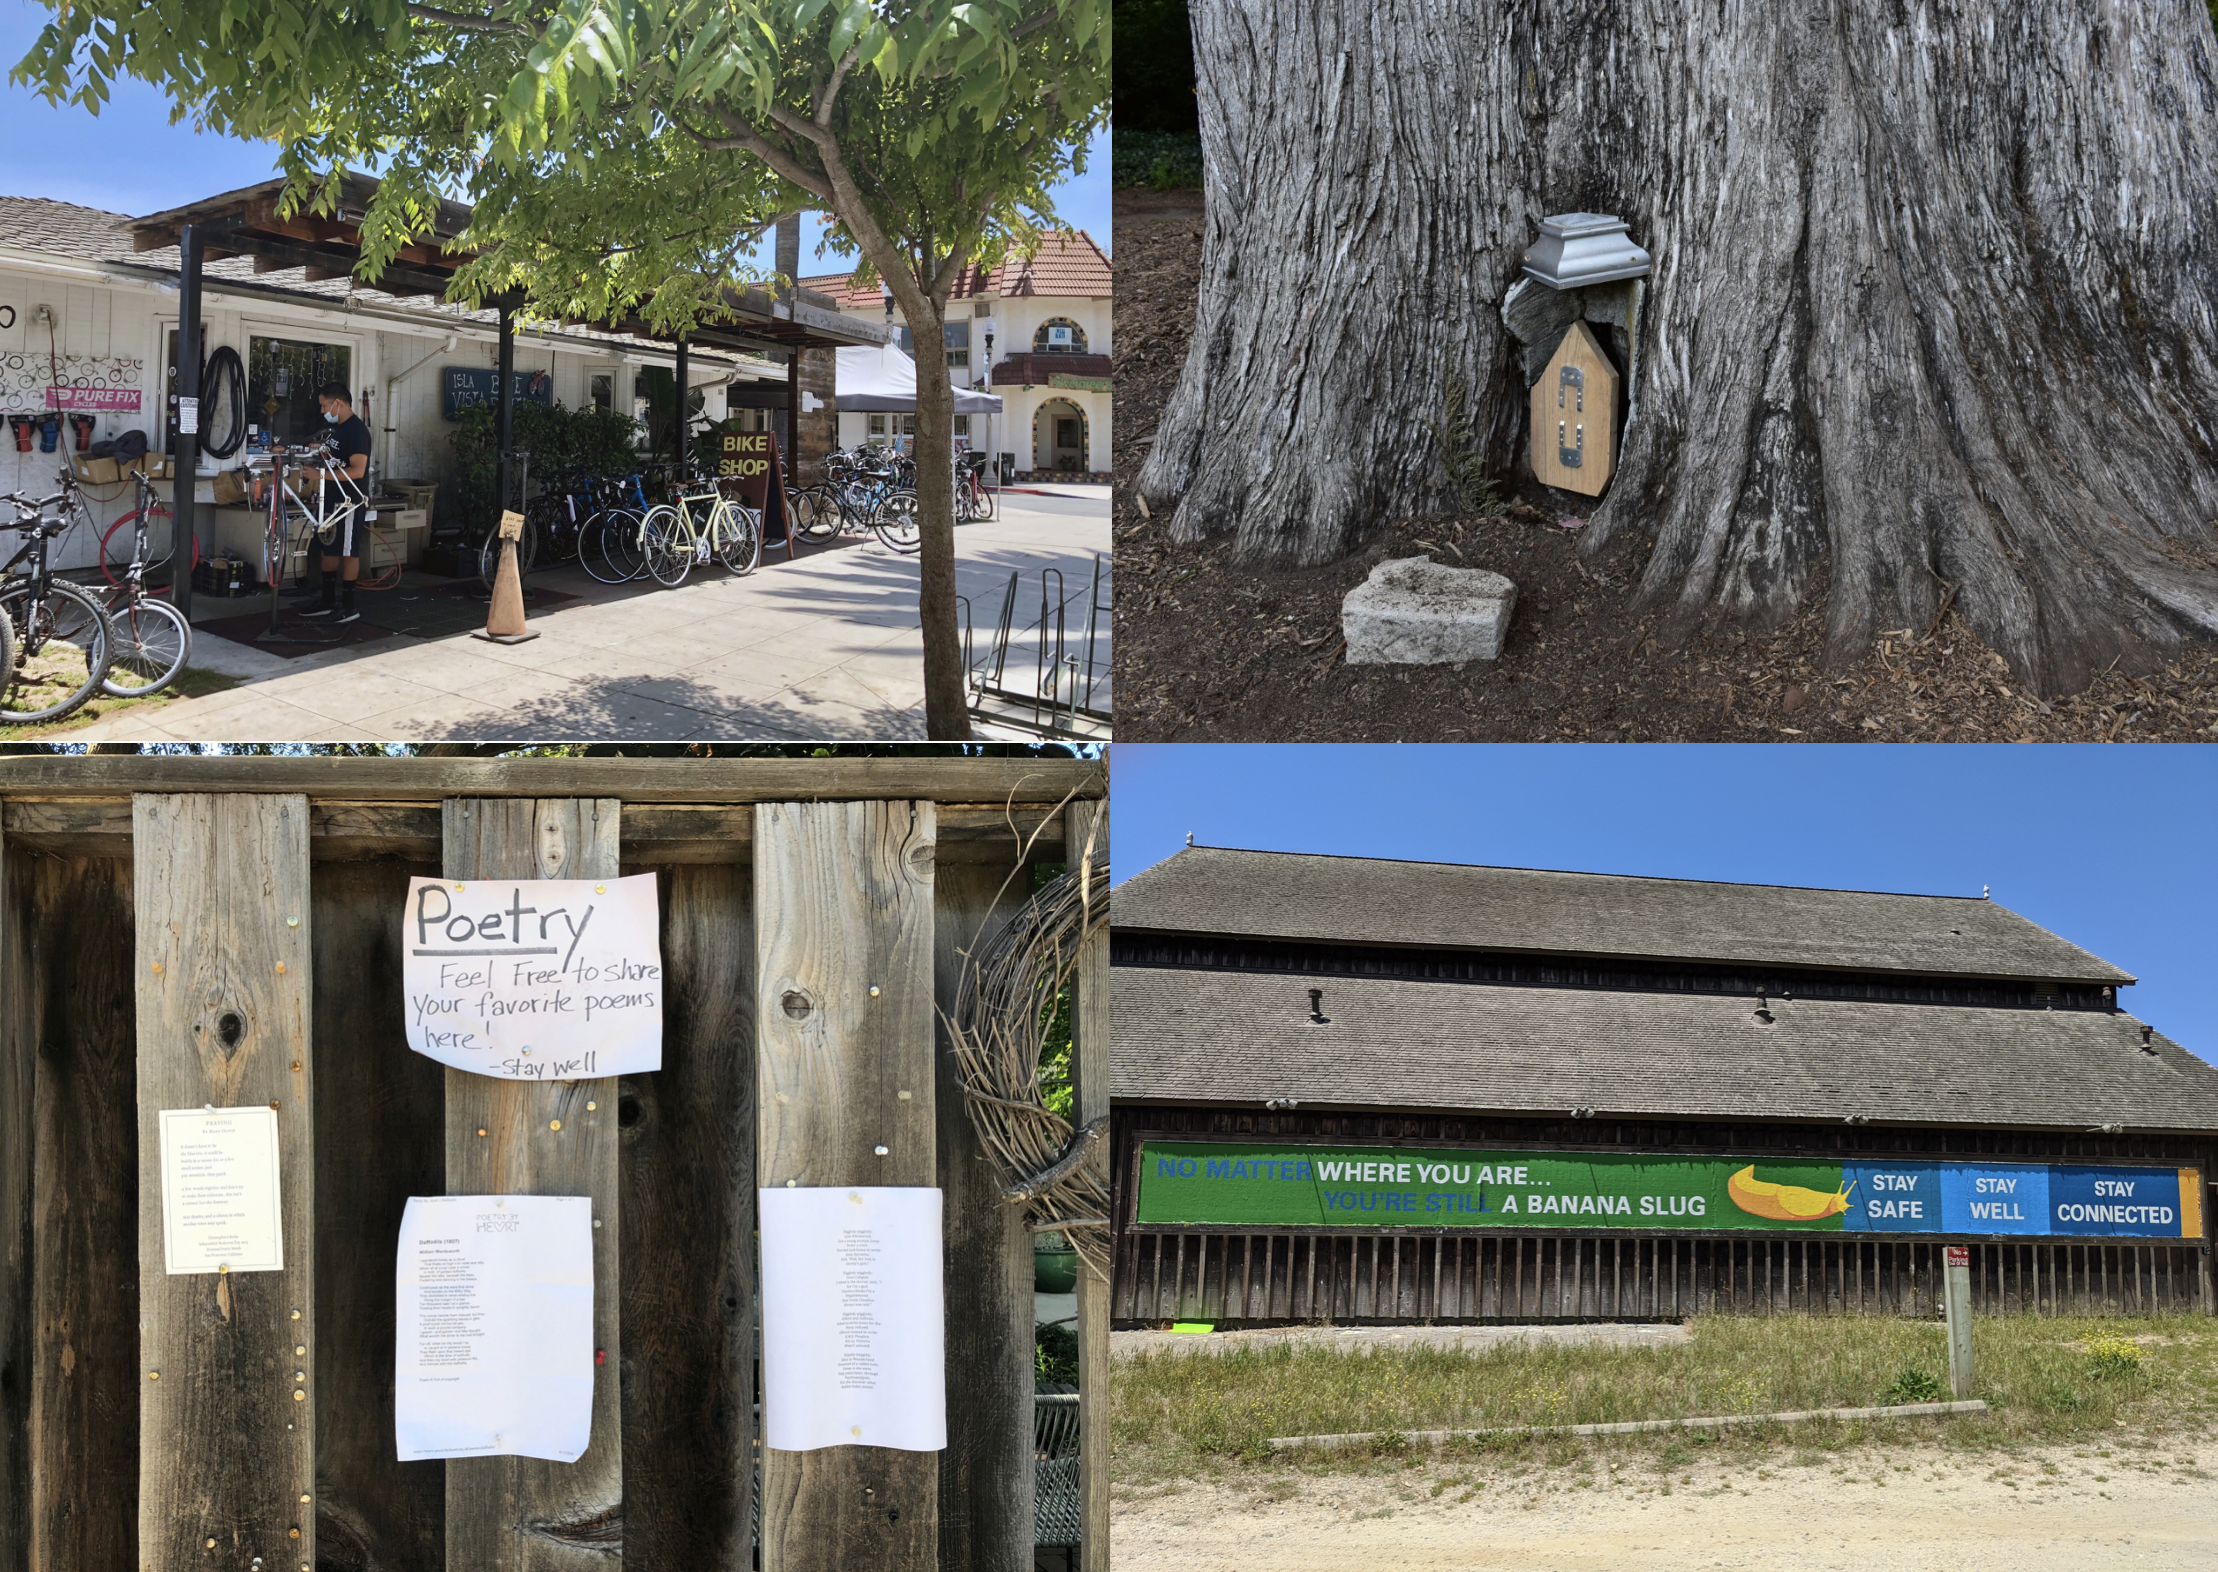 Photo credit (from left to right): Bike Shop (Kaitlin Breitag – UCSB), Fairy Door (Yvonne Tevis – UCOP), Free Poetry (Chasiri Sherron – UCOP), Banana Slugs (Lisa Bono – UCSC)